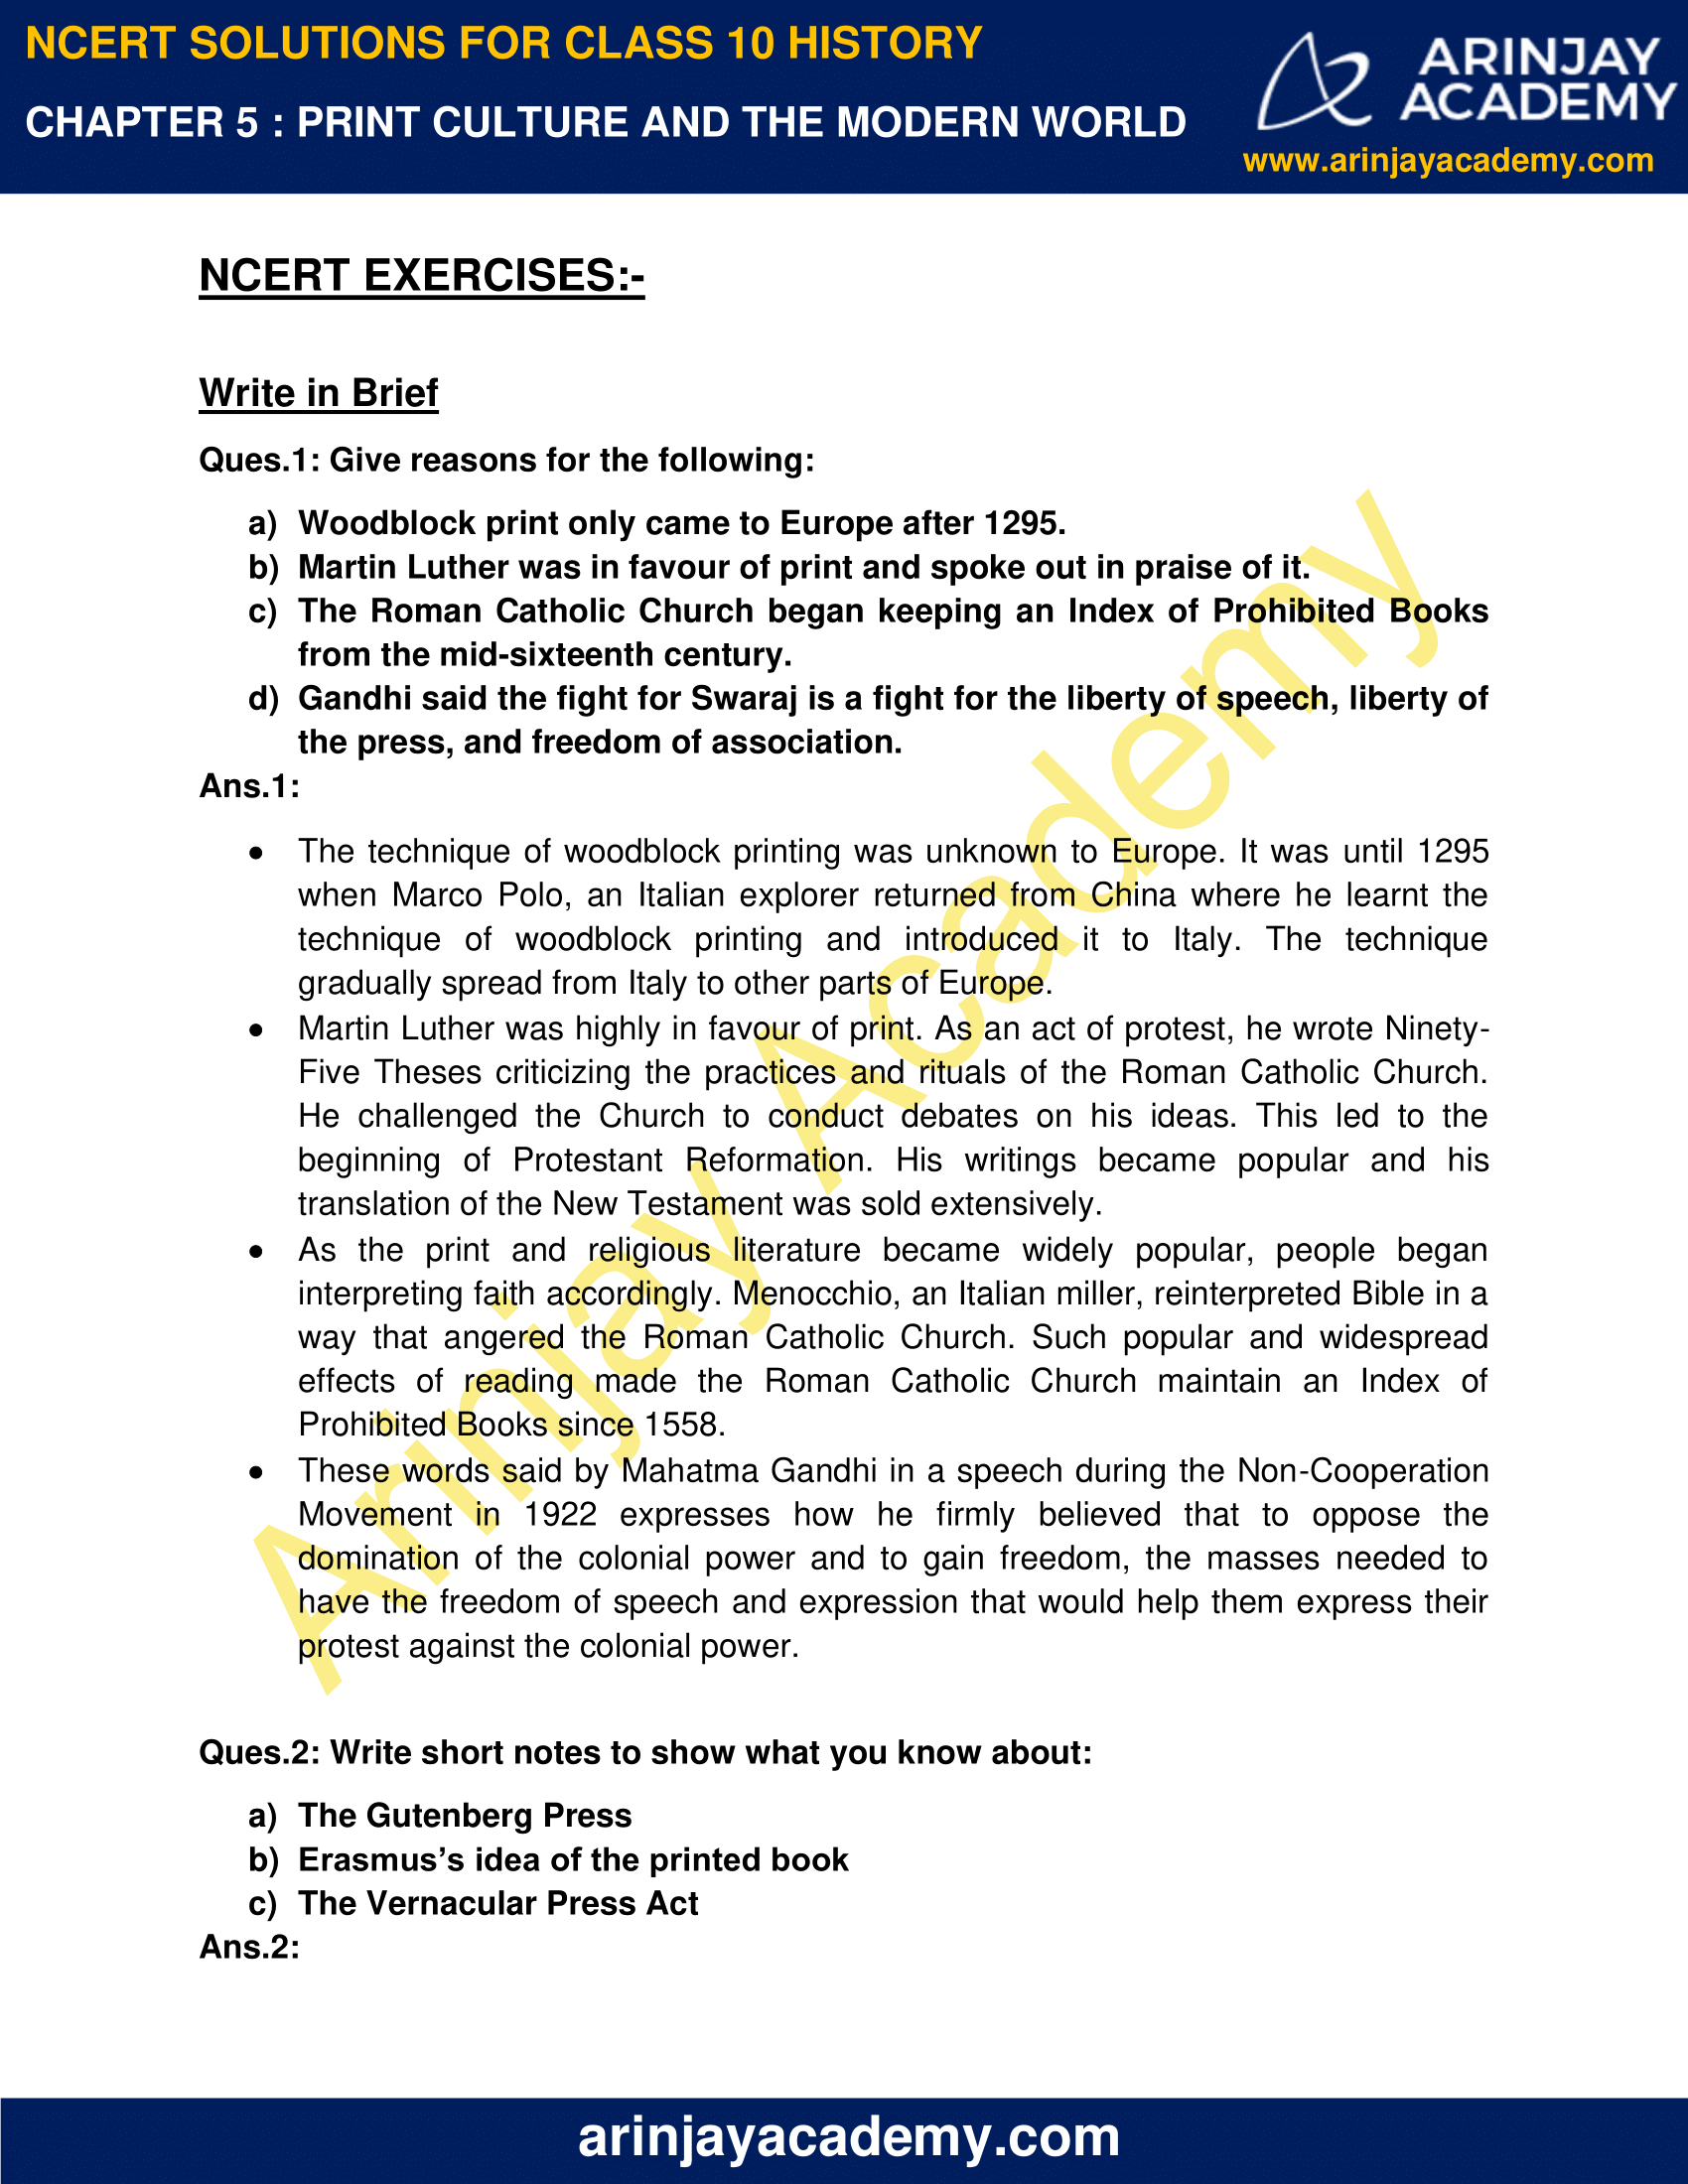 NCERT Solutions for Class 10 History Chapter 5 - Print Culture and the Modern World image 1